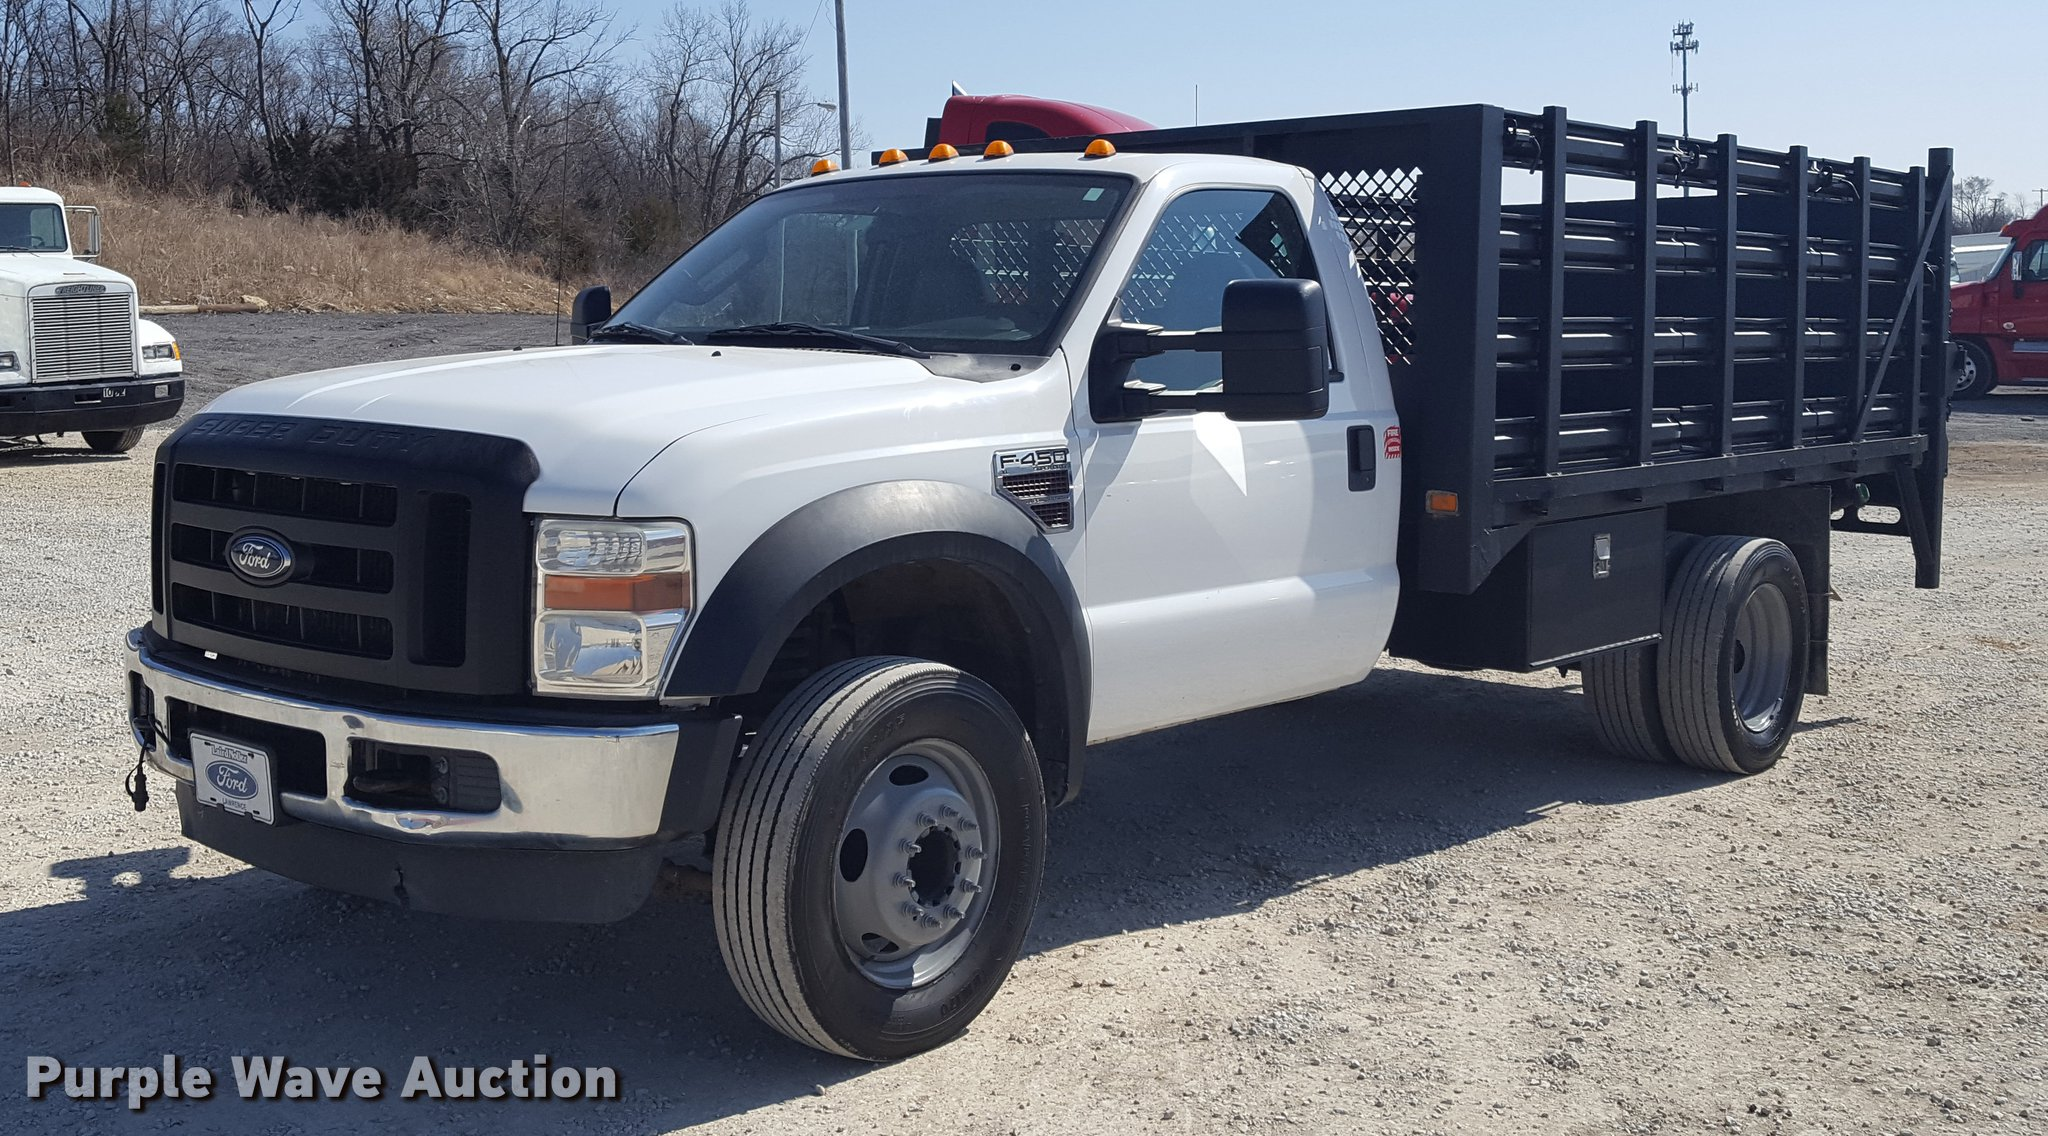 2009 Ford F450 Super Duty flatbed truck Item DF3580